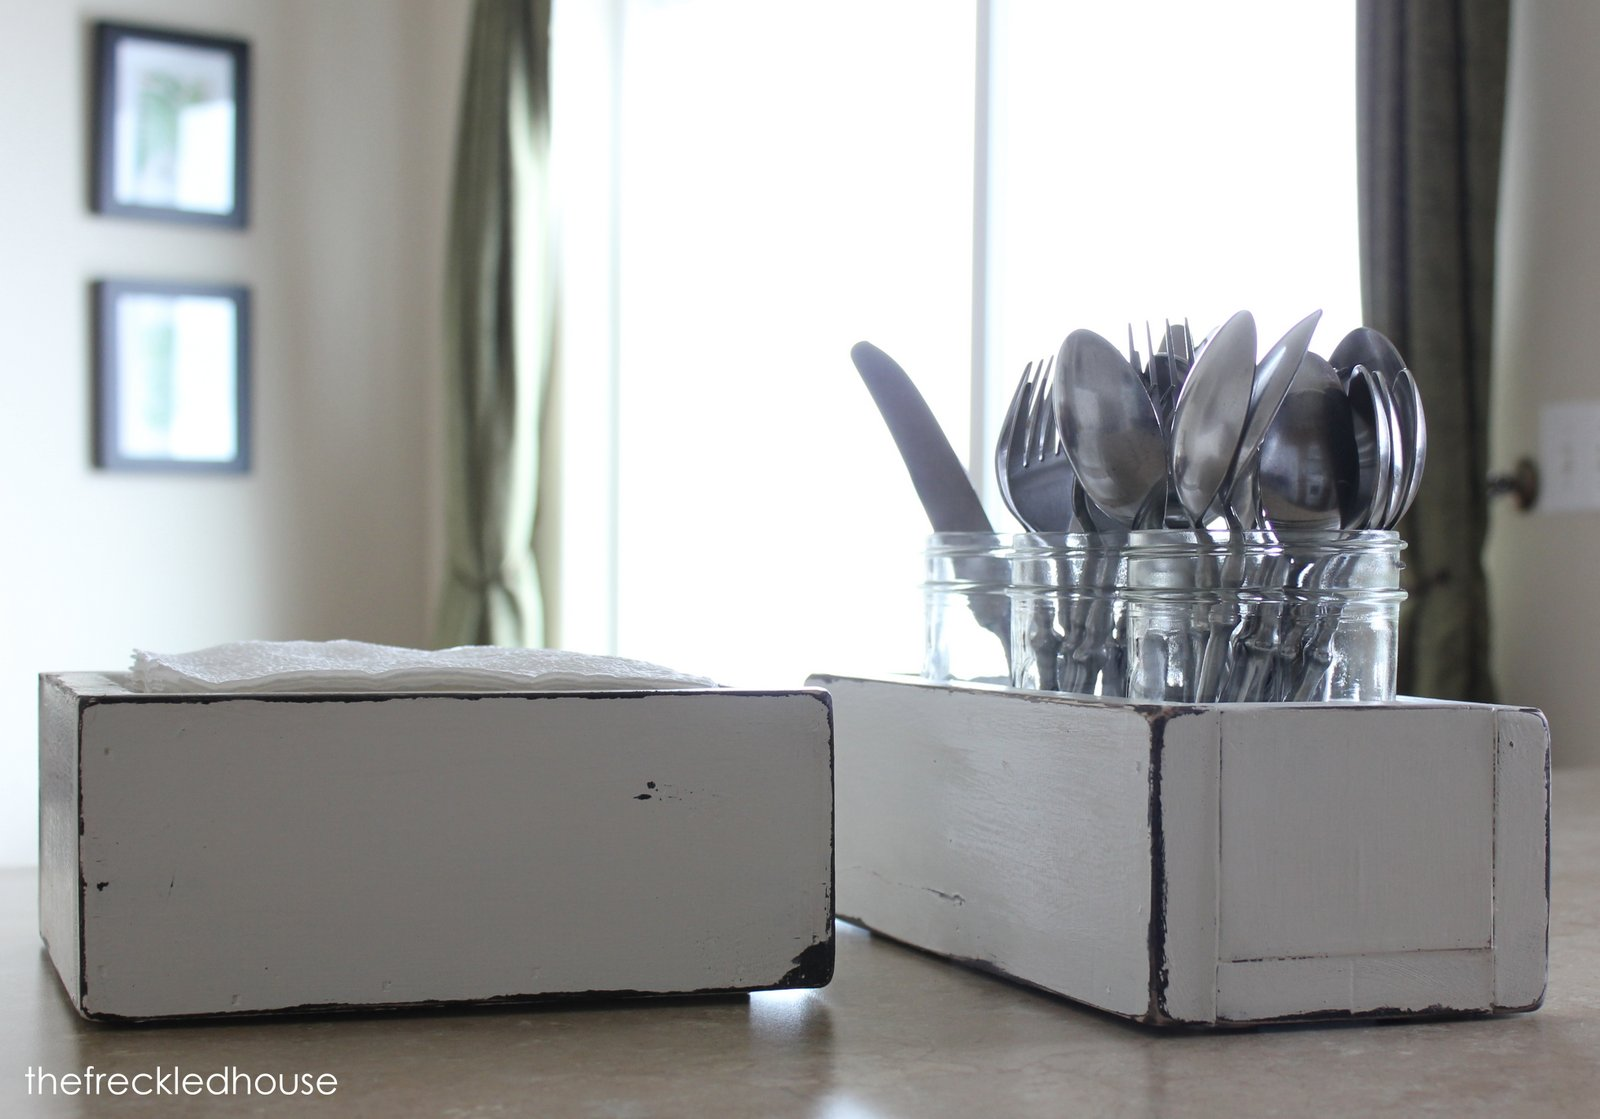 The Freckled House: Napkin Holder and Silverware Caddy